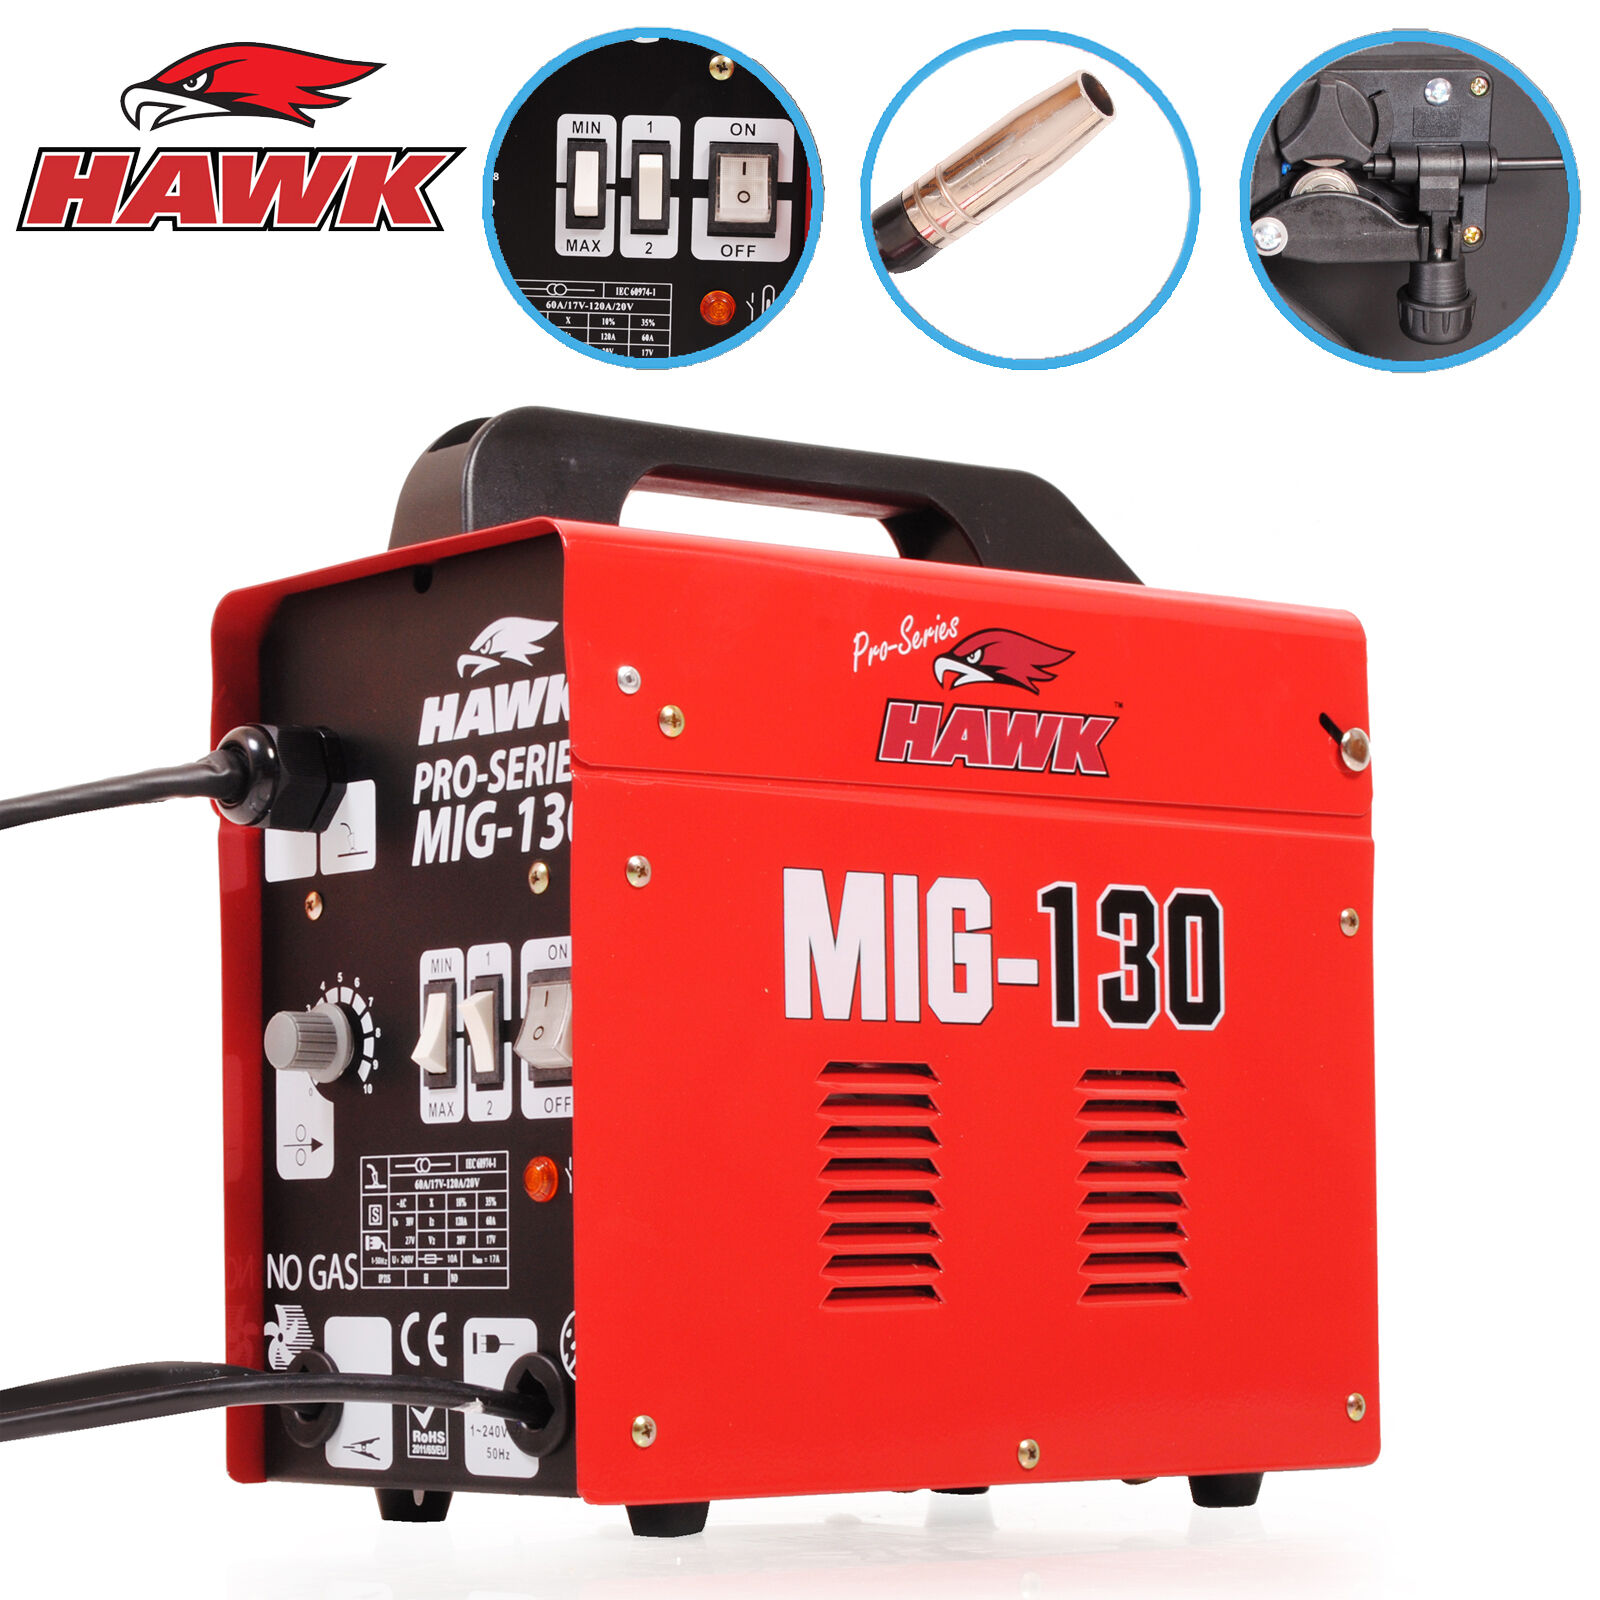 Hawk 150 gas no gasless flux solid wire feed mig weld for Mig welder wire feed motor not working